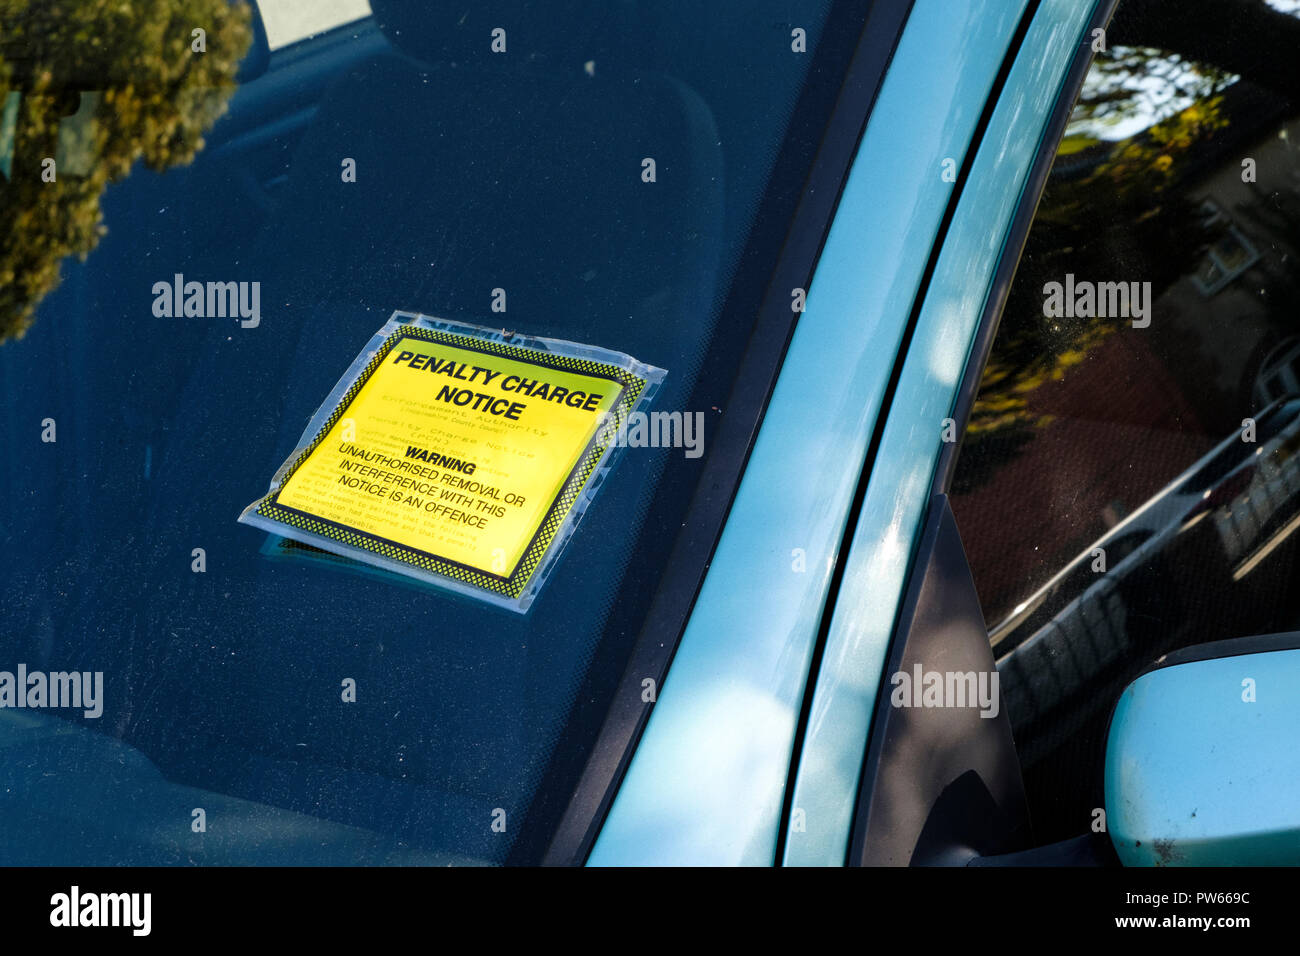 Parking fine. A Penalty Charge Notice stuck on a car windscreen, Lincoln, England, UK - Stock Image